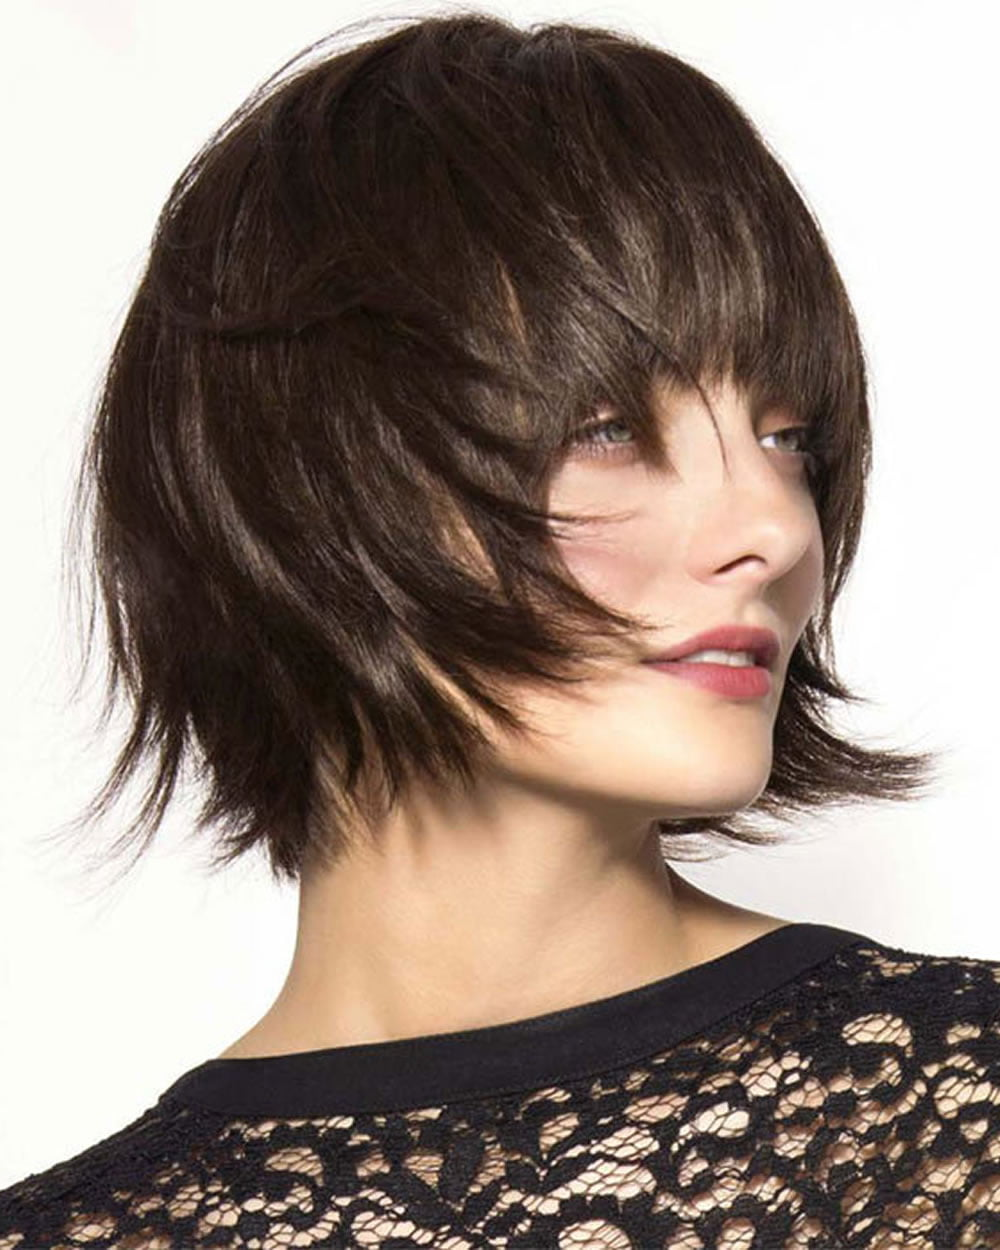 Bob Haircut Ideas For Fall Winter 2017 2018 22 Top Bob